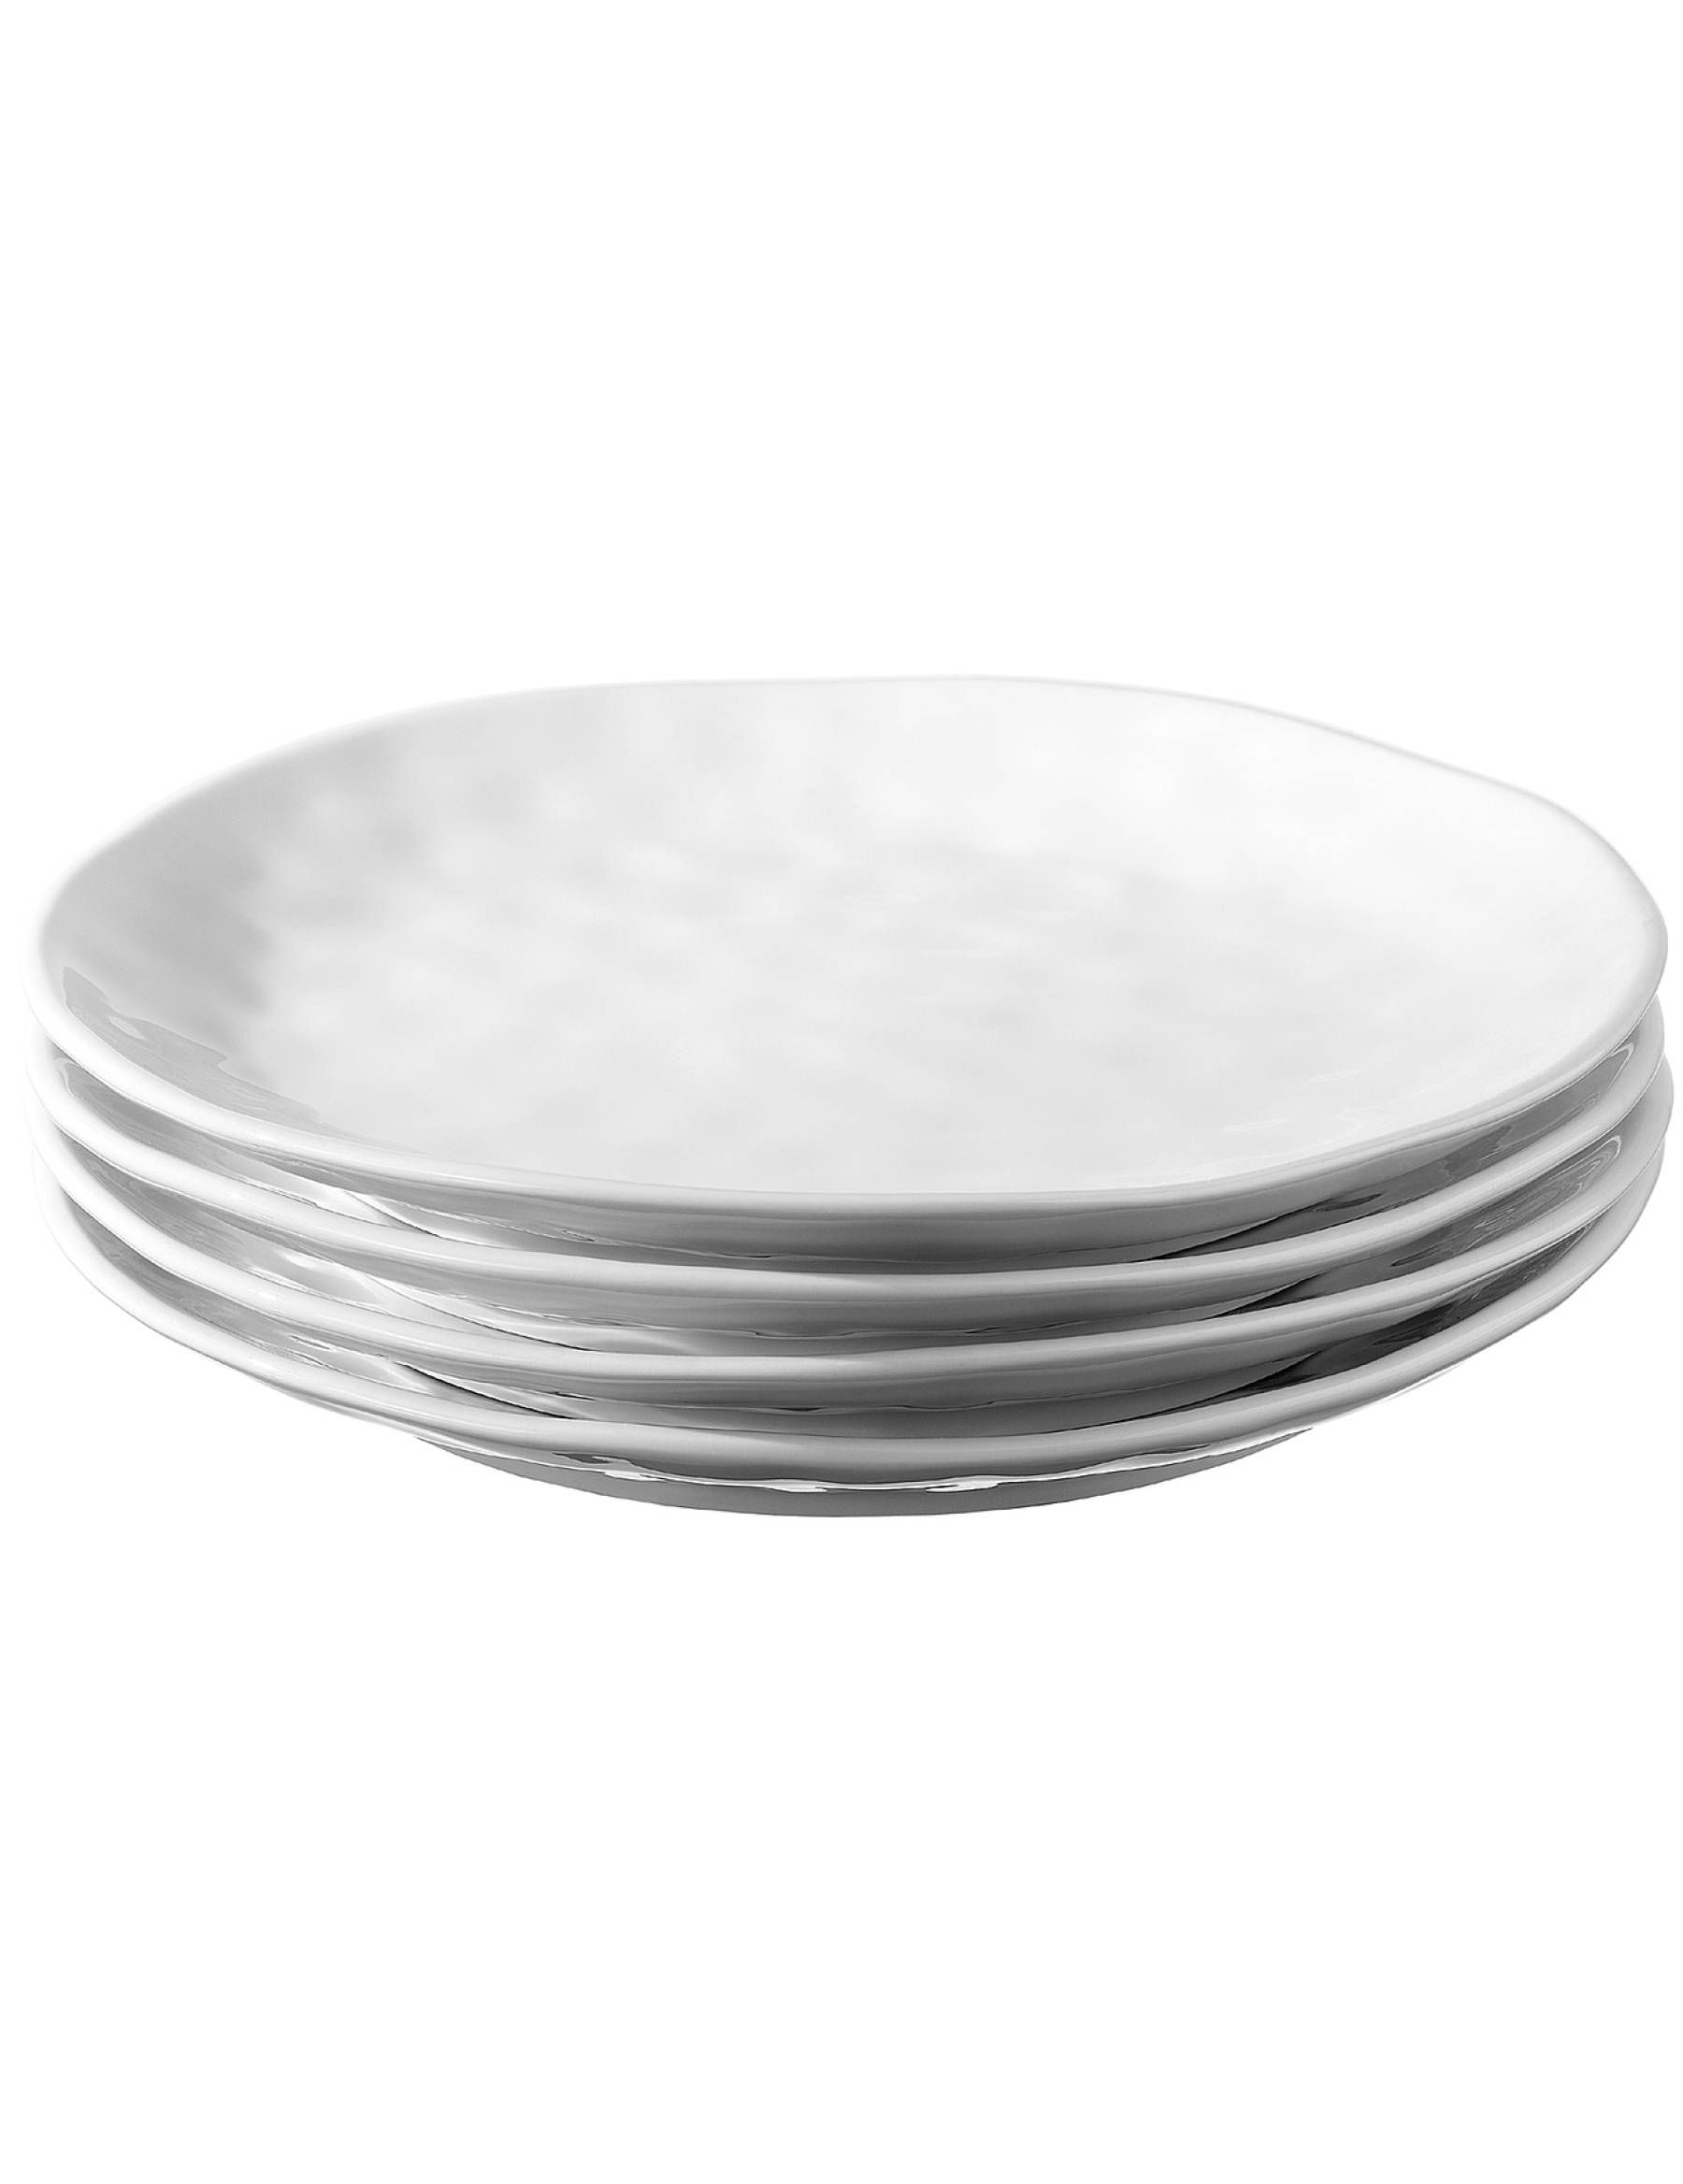 David Jones - Ecology Organica Open Stock Side Plate  sc 1 st  Pinterest : dinnerware open stock - pezcame.com